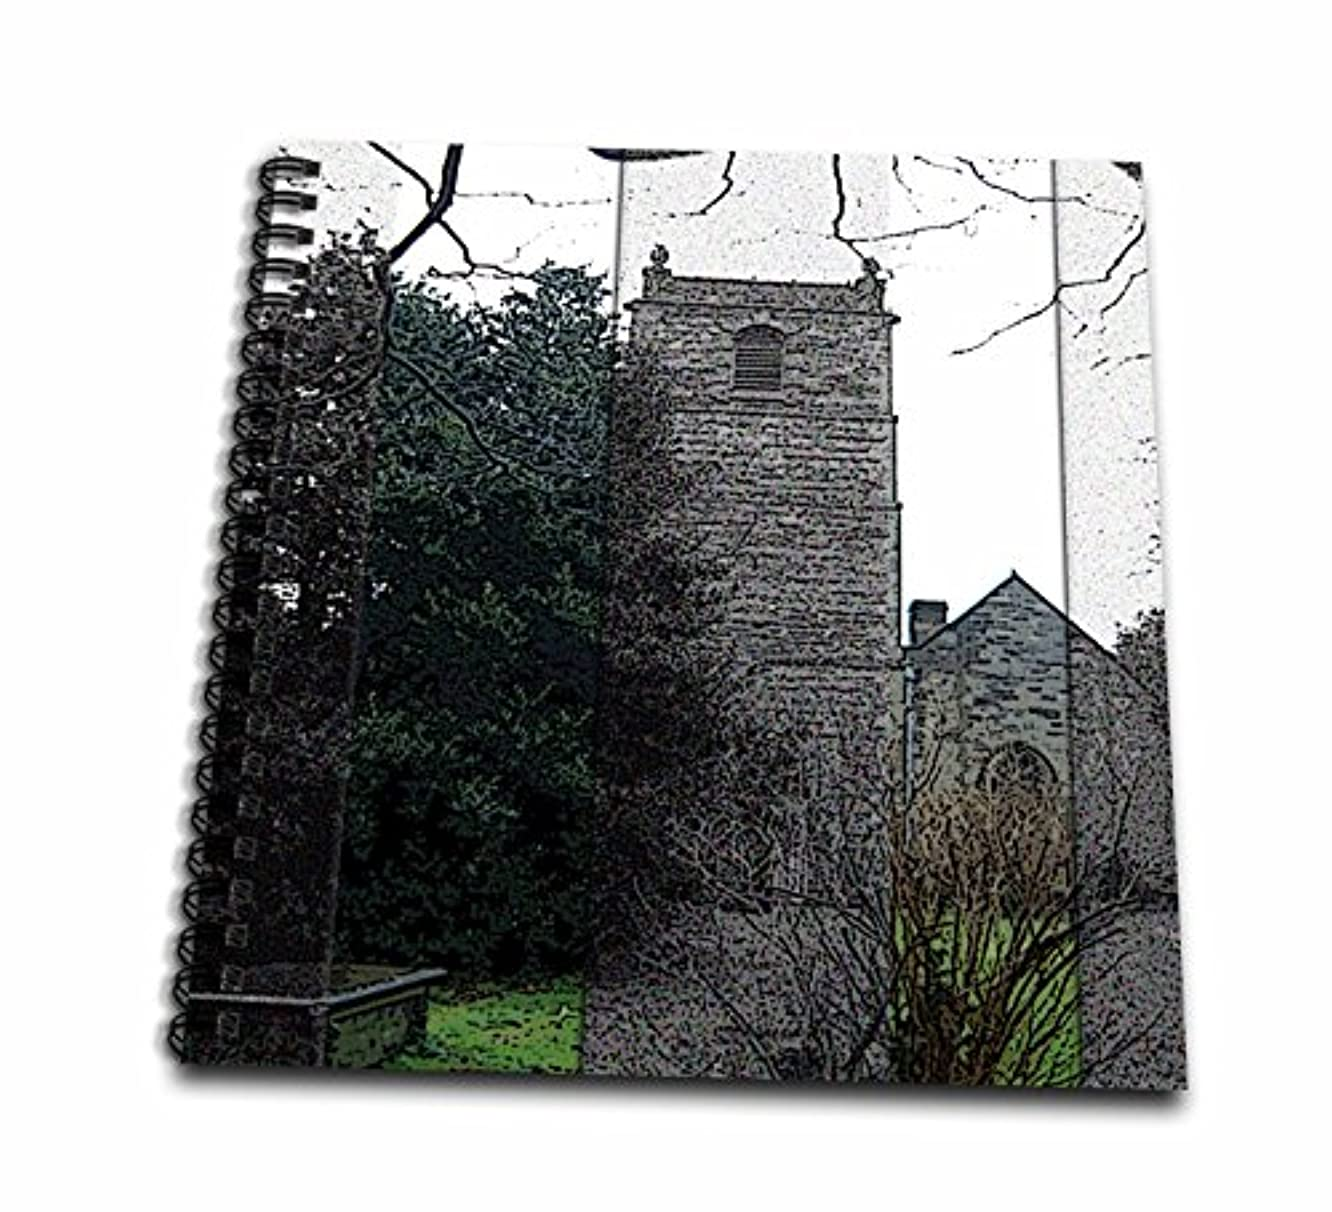 3dRose db_44656_1 Beautiful Old Church in Wales with a Graveyard on The Grounds Done in Black and White and Some Color-Drawing Book, 8 by 8-Inch